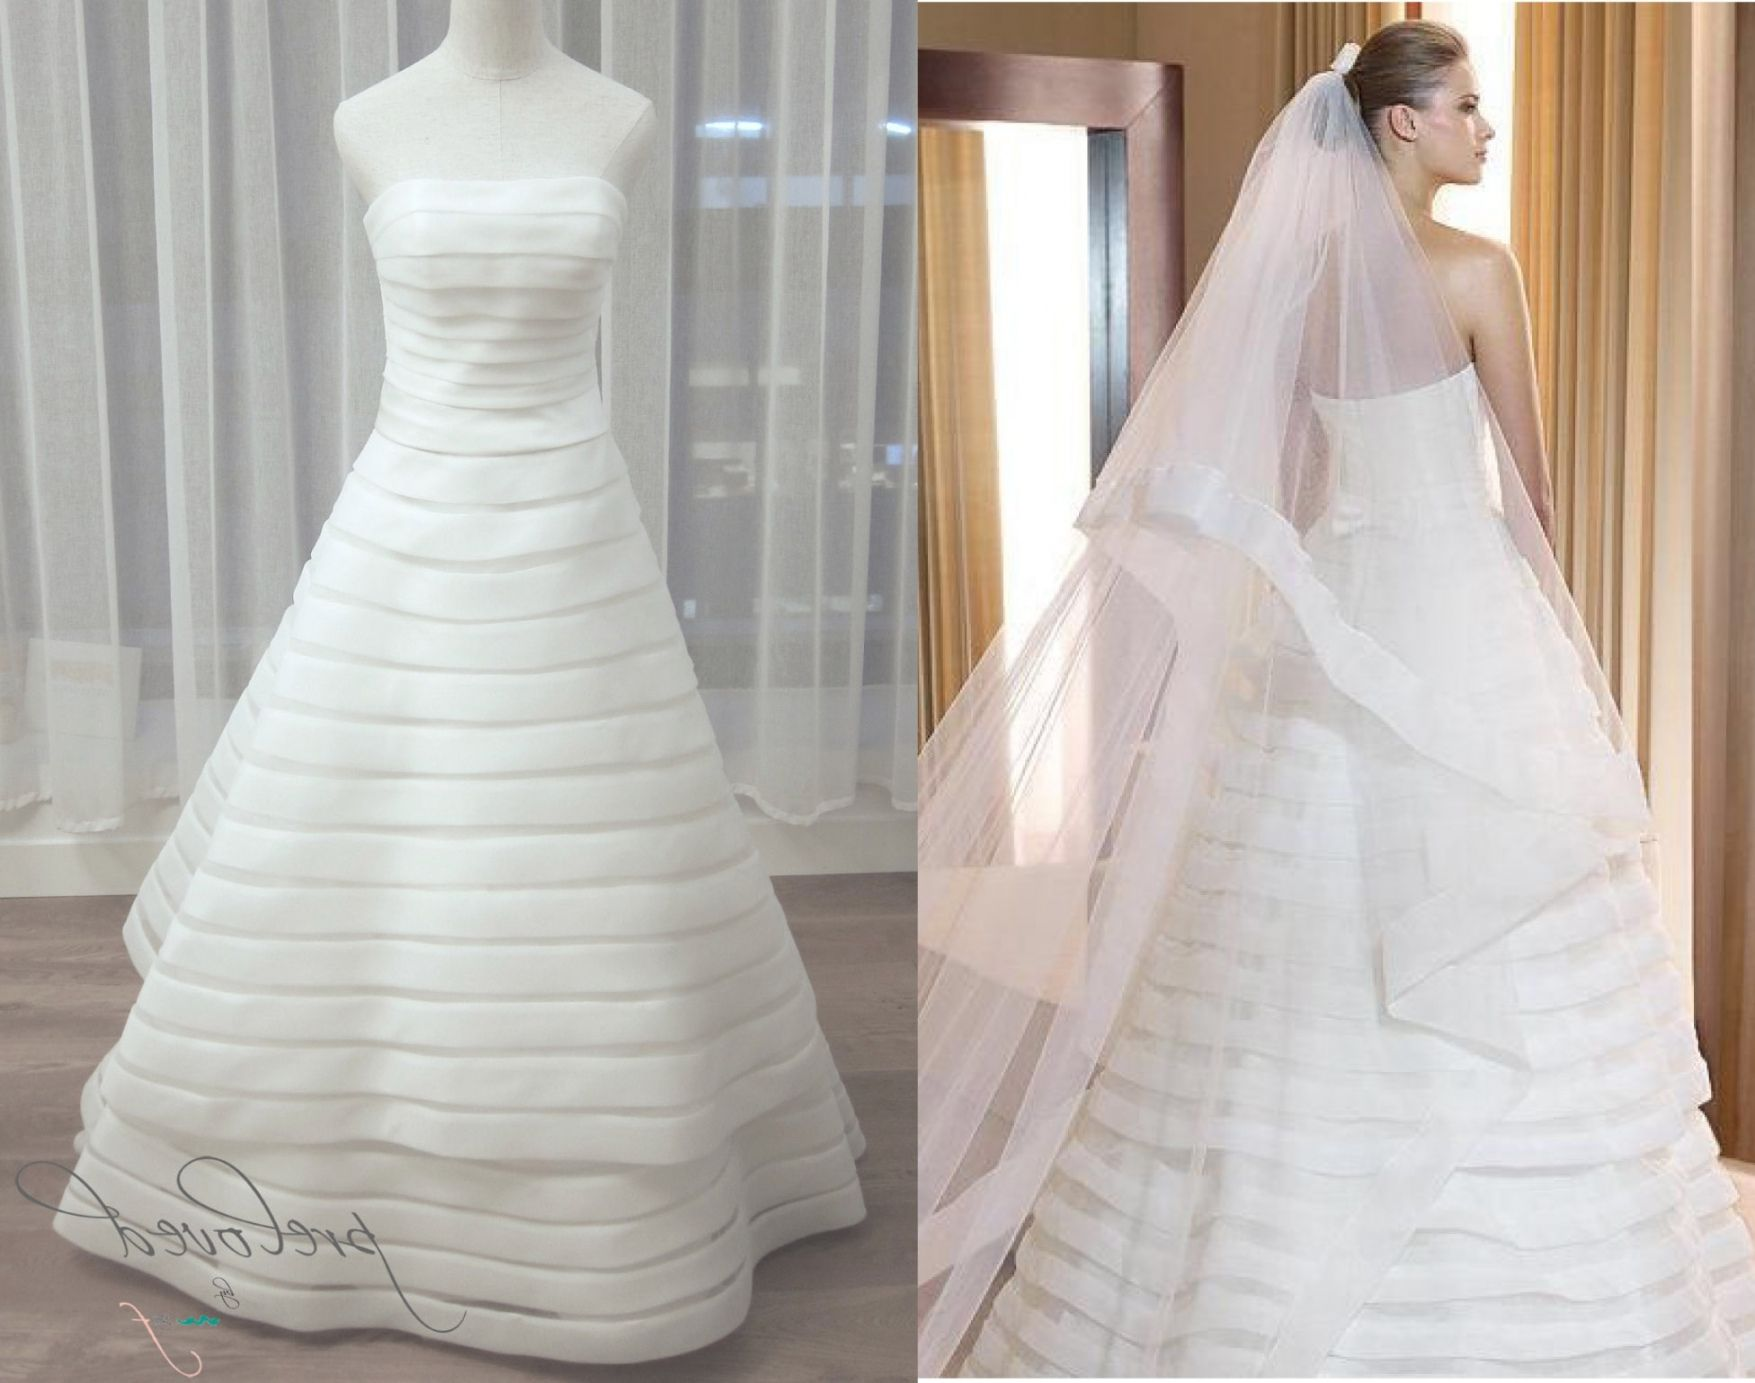 2019 2nd Hand Wedding Dresses - Wedding Dresses for Cheap Check more ...